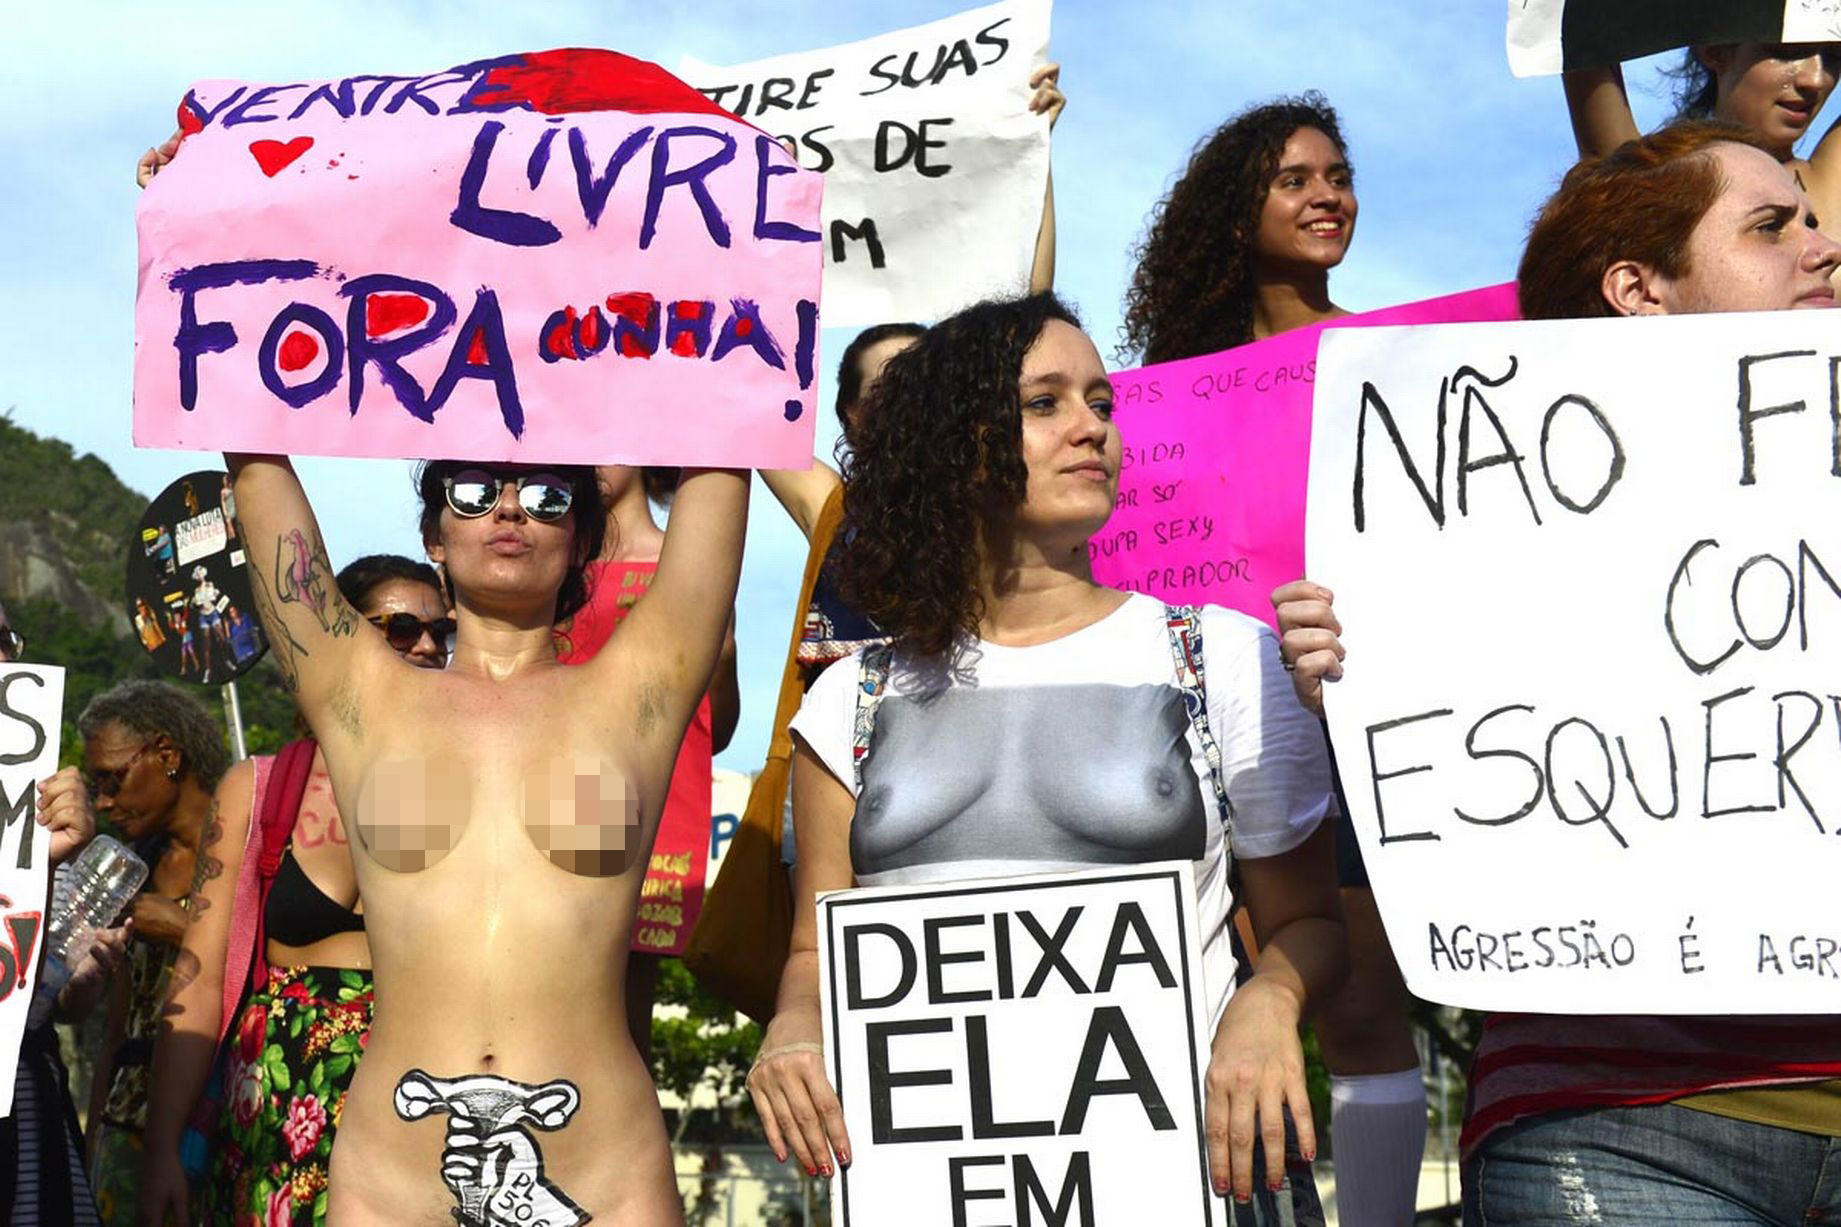 Hundreds Of Women Strip In SlutWalk Protest Against Sexual Violence UNILAD rex Copy96807